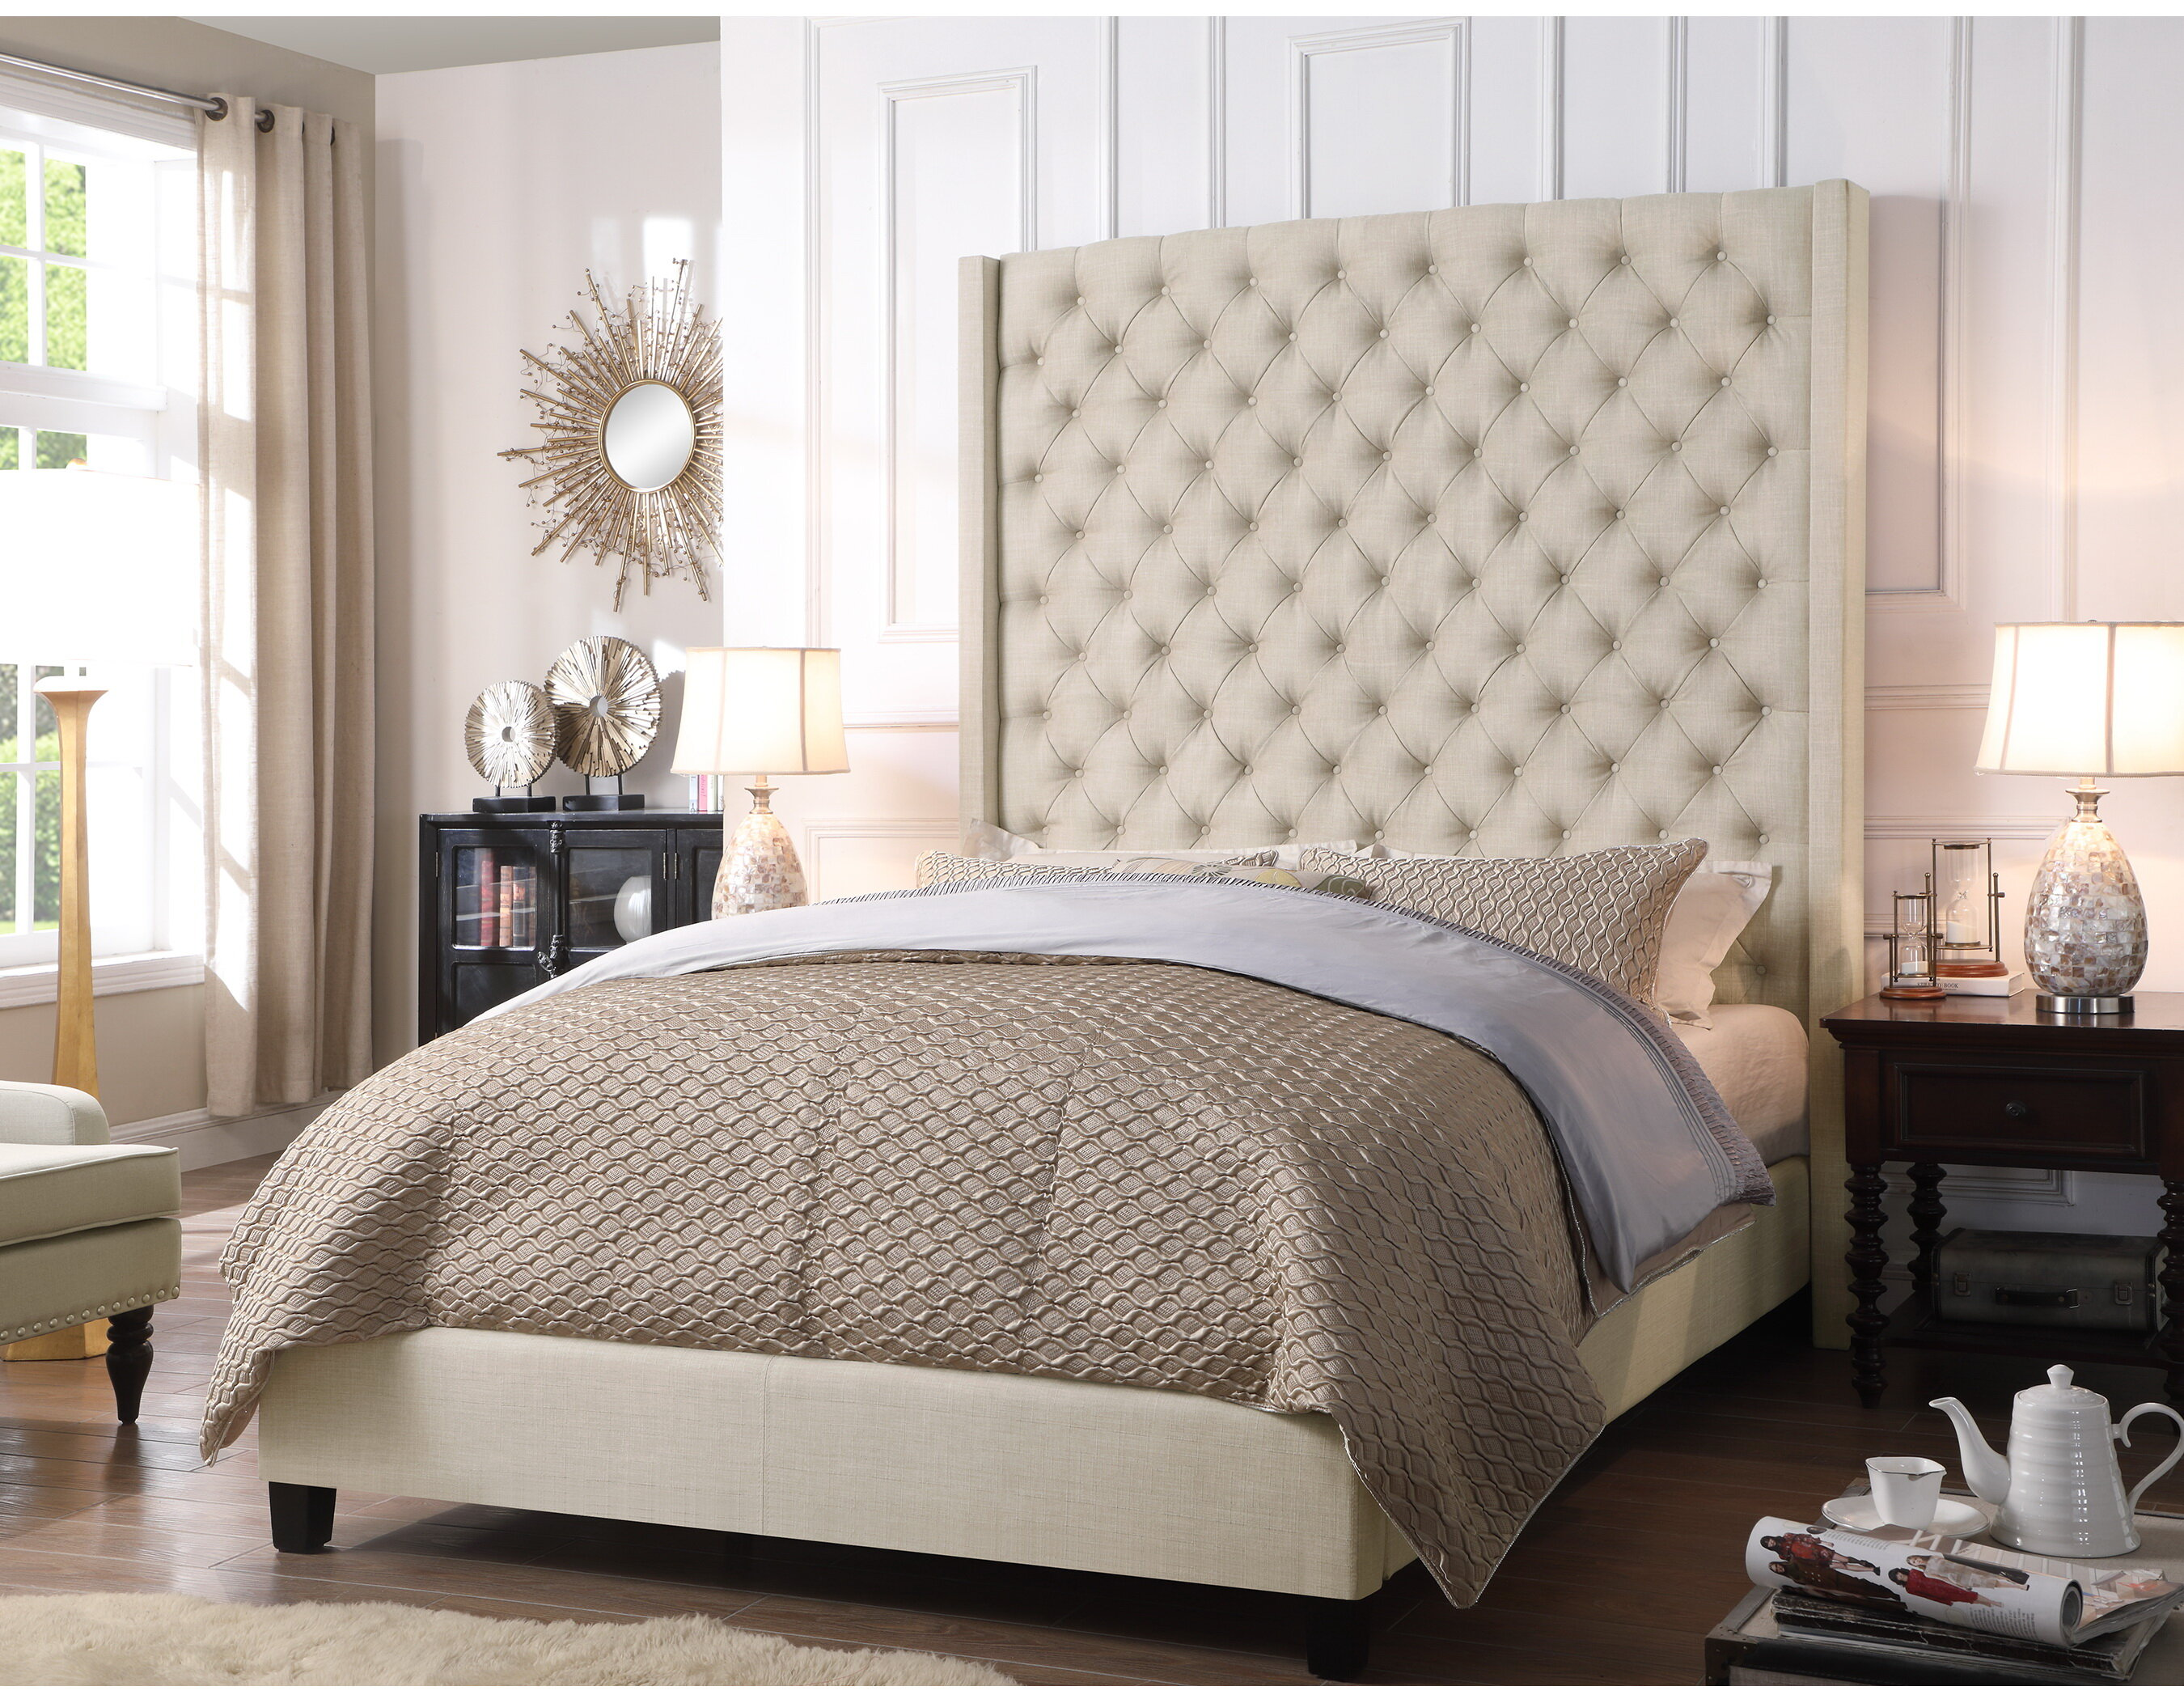 Superieur Antonio Wingback Tufted High Headboard Upholstered Standard Bed